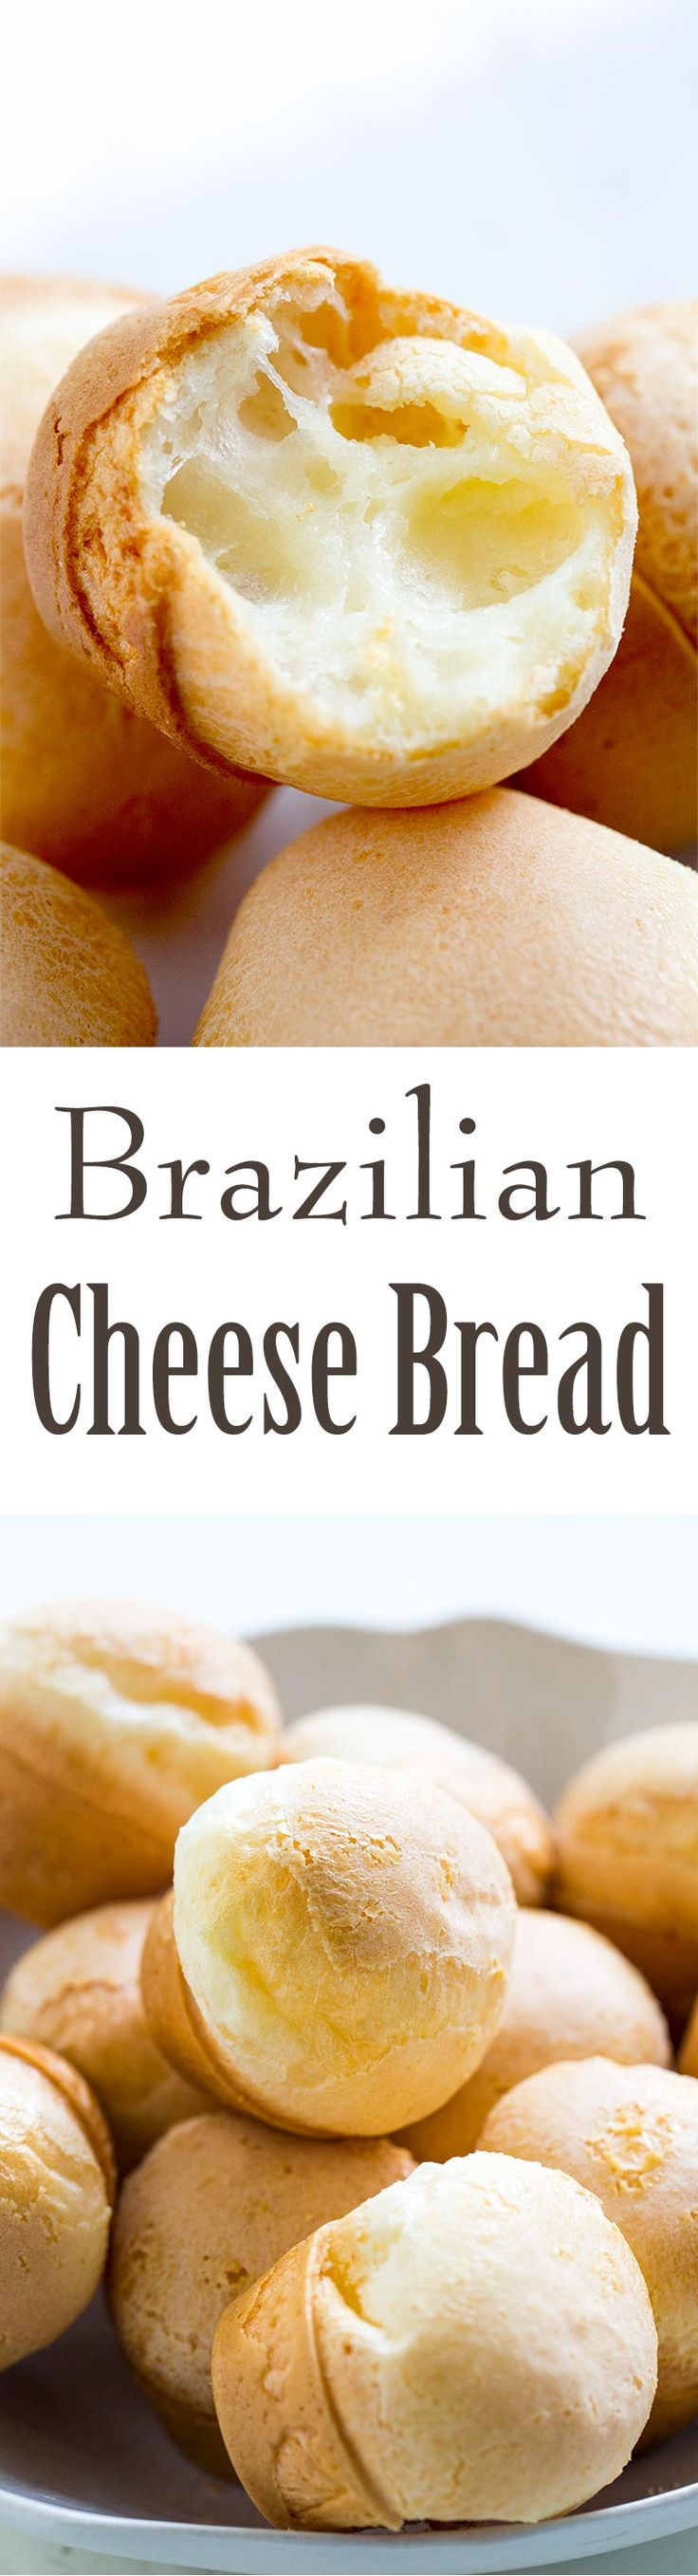 Brazilian Cheese Bread is EASY to make! Puffy, chewy, cheesy. All you need is tapioca flour, milk, egg, olive oil, and cheese. Gluten free and so good! Mix everything in a blender and pour into mini muffin tins to bake. On SimplyRecipes.com